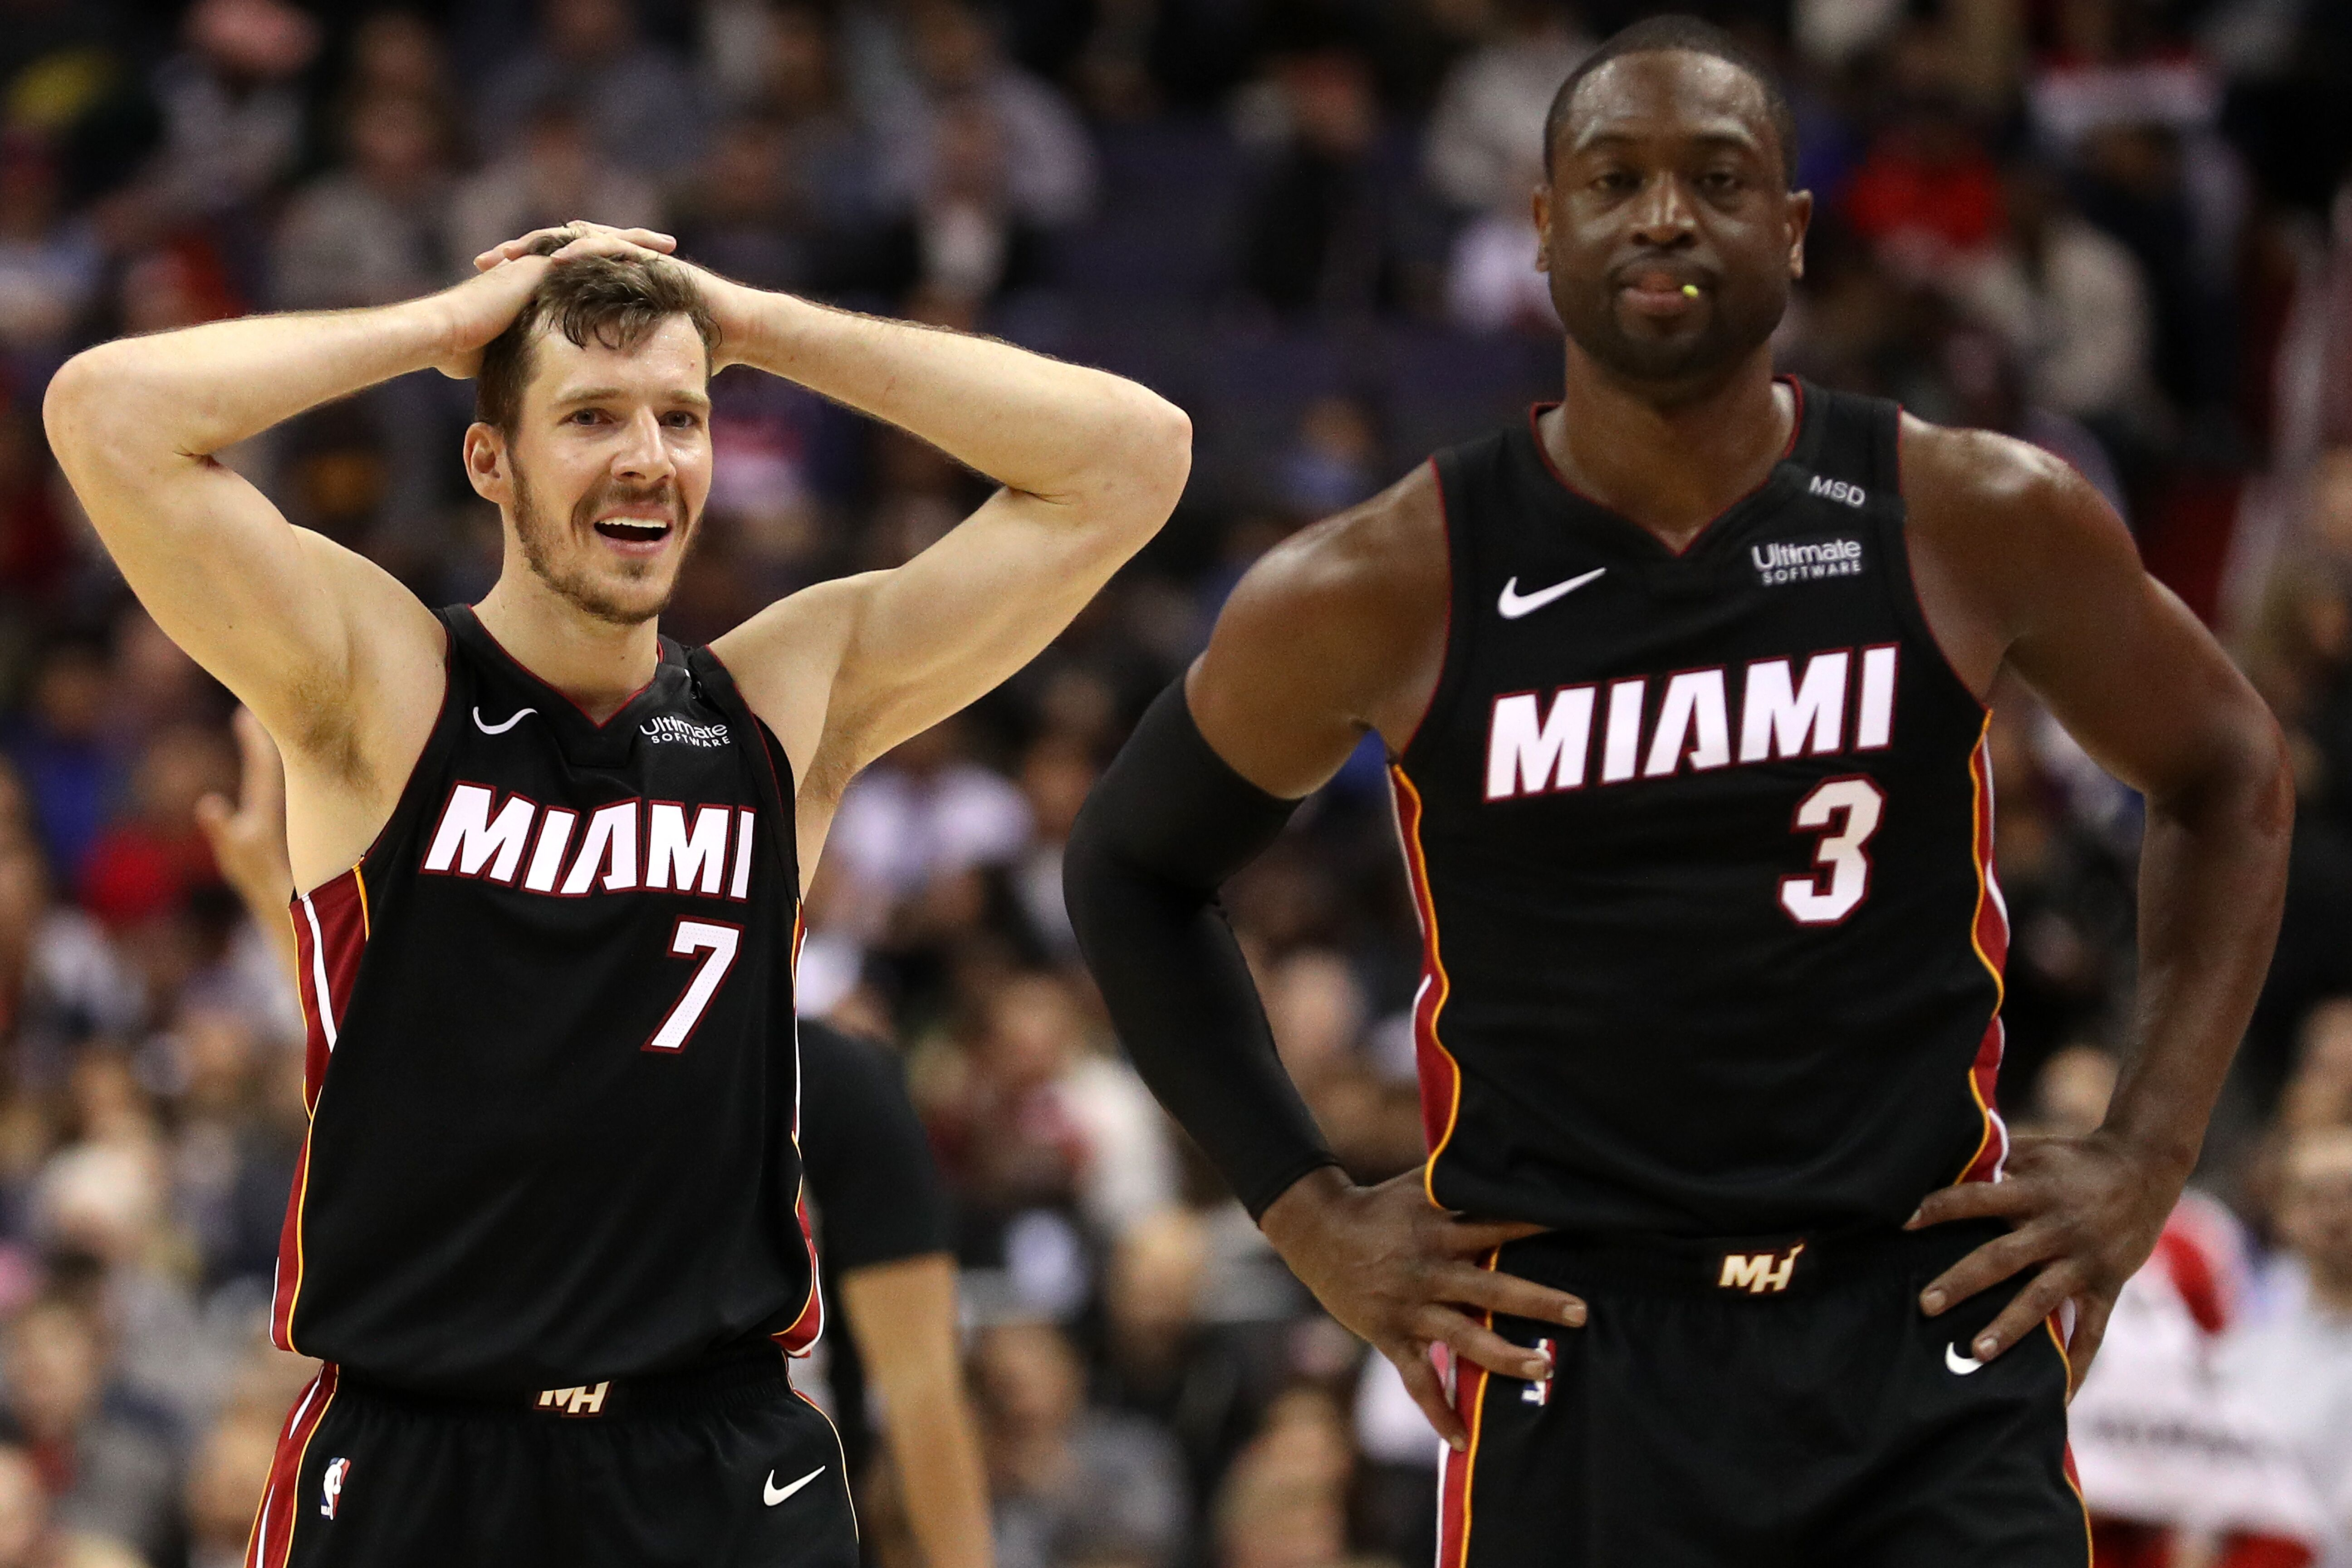 481e3b190344 Are the Miami Heat relying too much on Dwyane Wade s clutchness